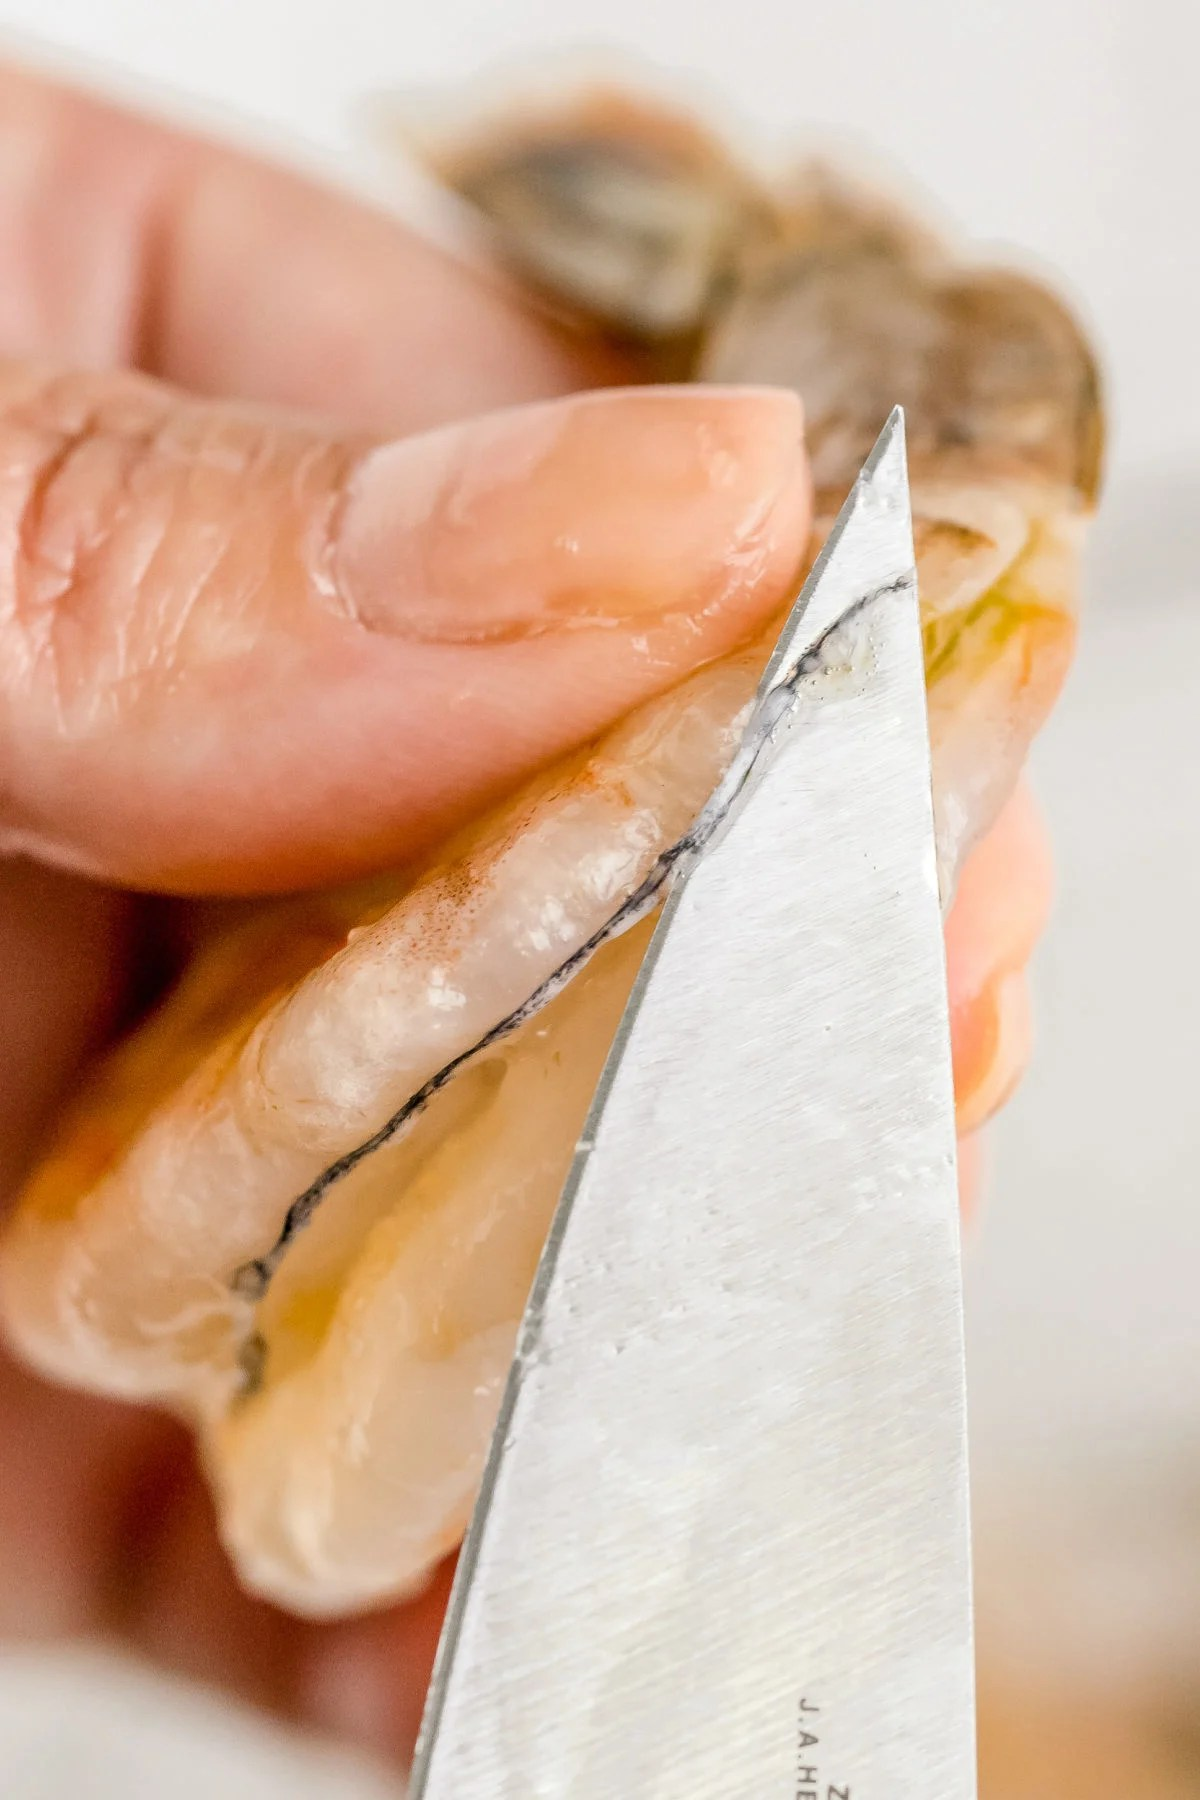 A knife taking out the vein of a shrimp.